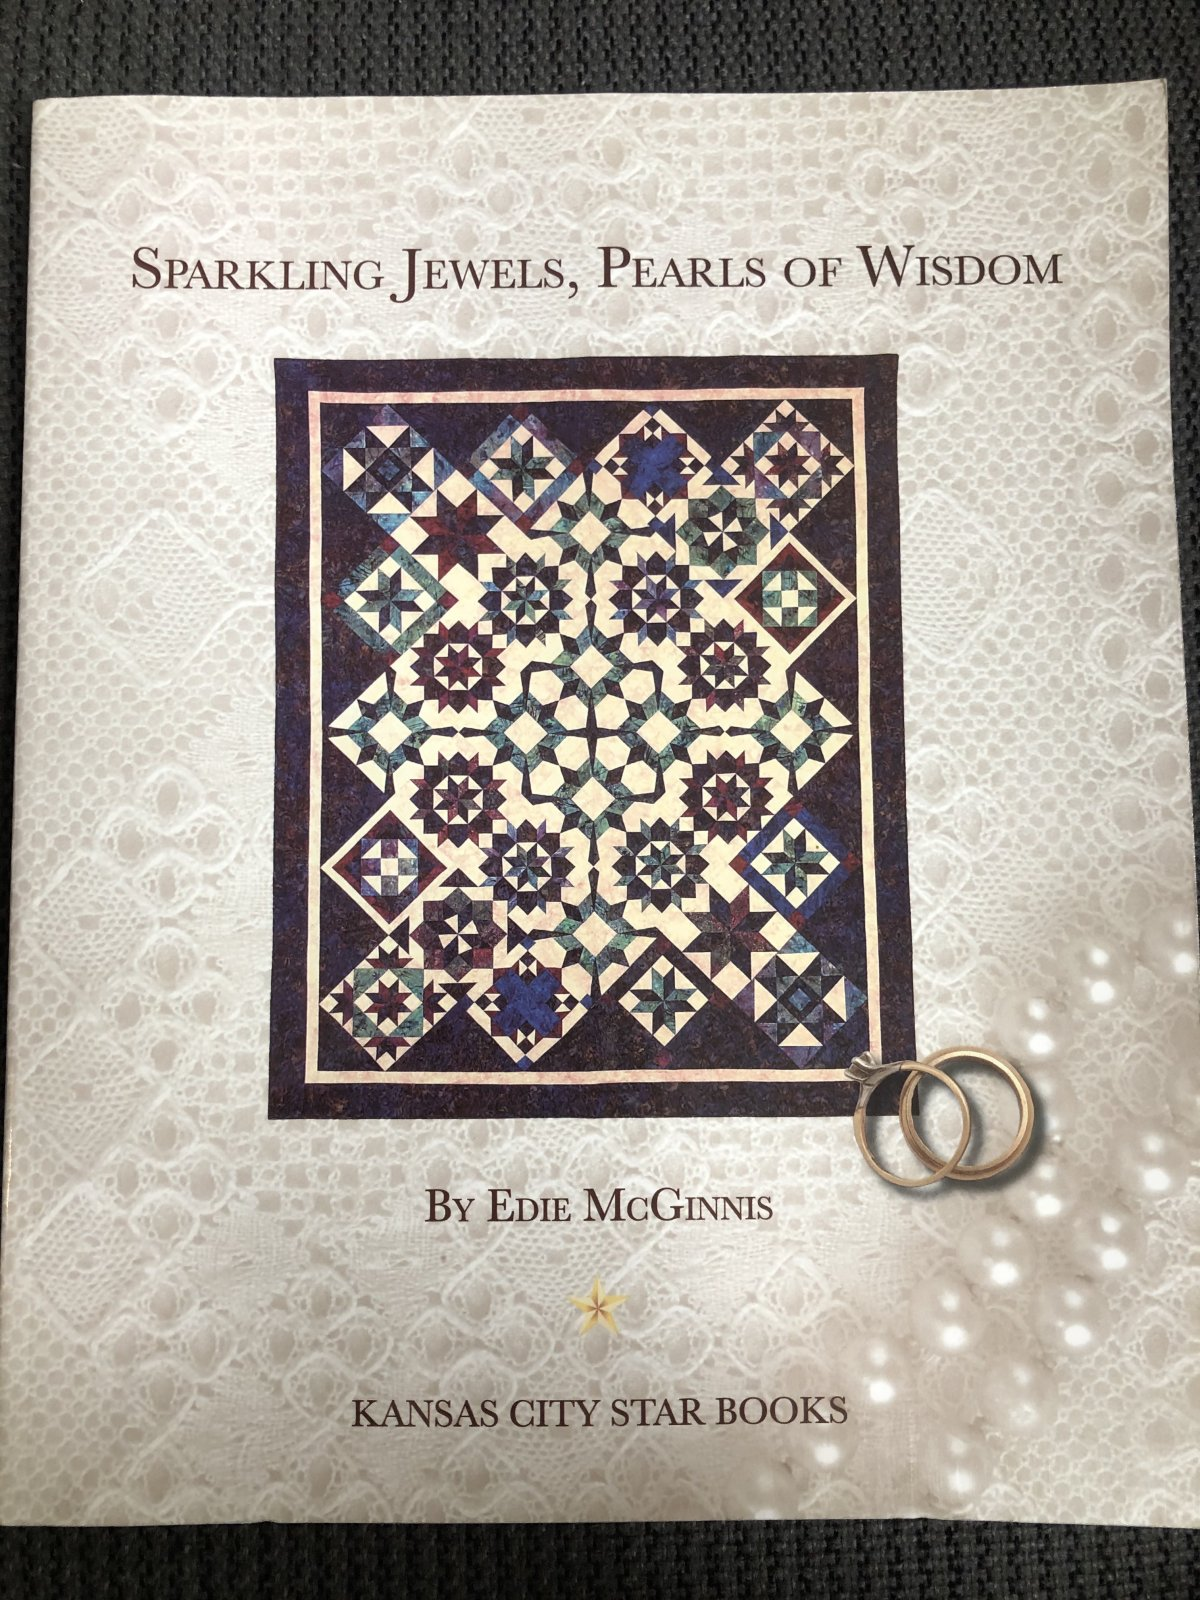 Sparkling Jewels, Pearls of Wisdom